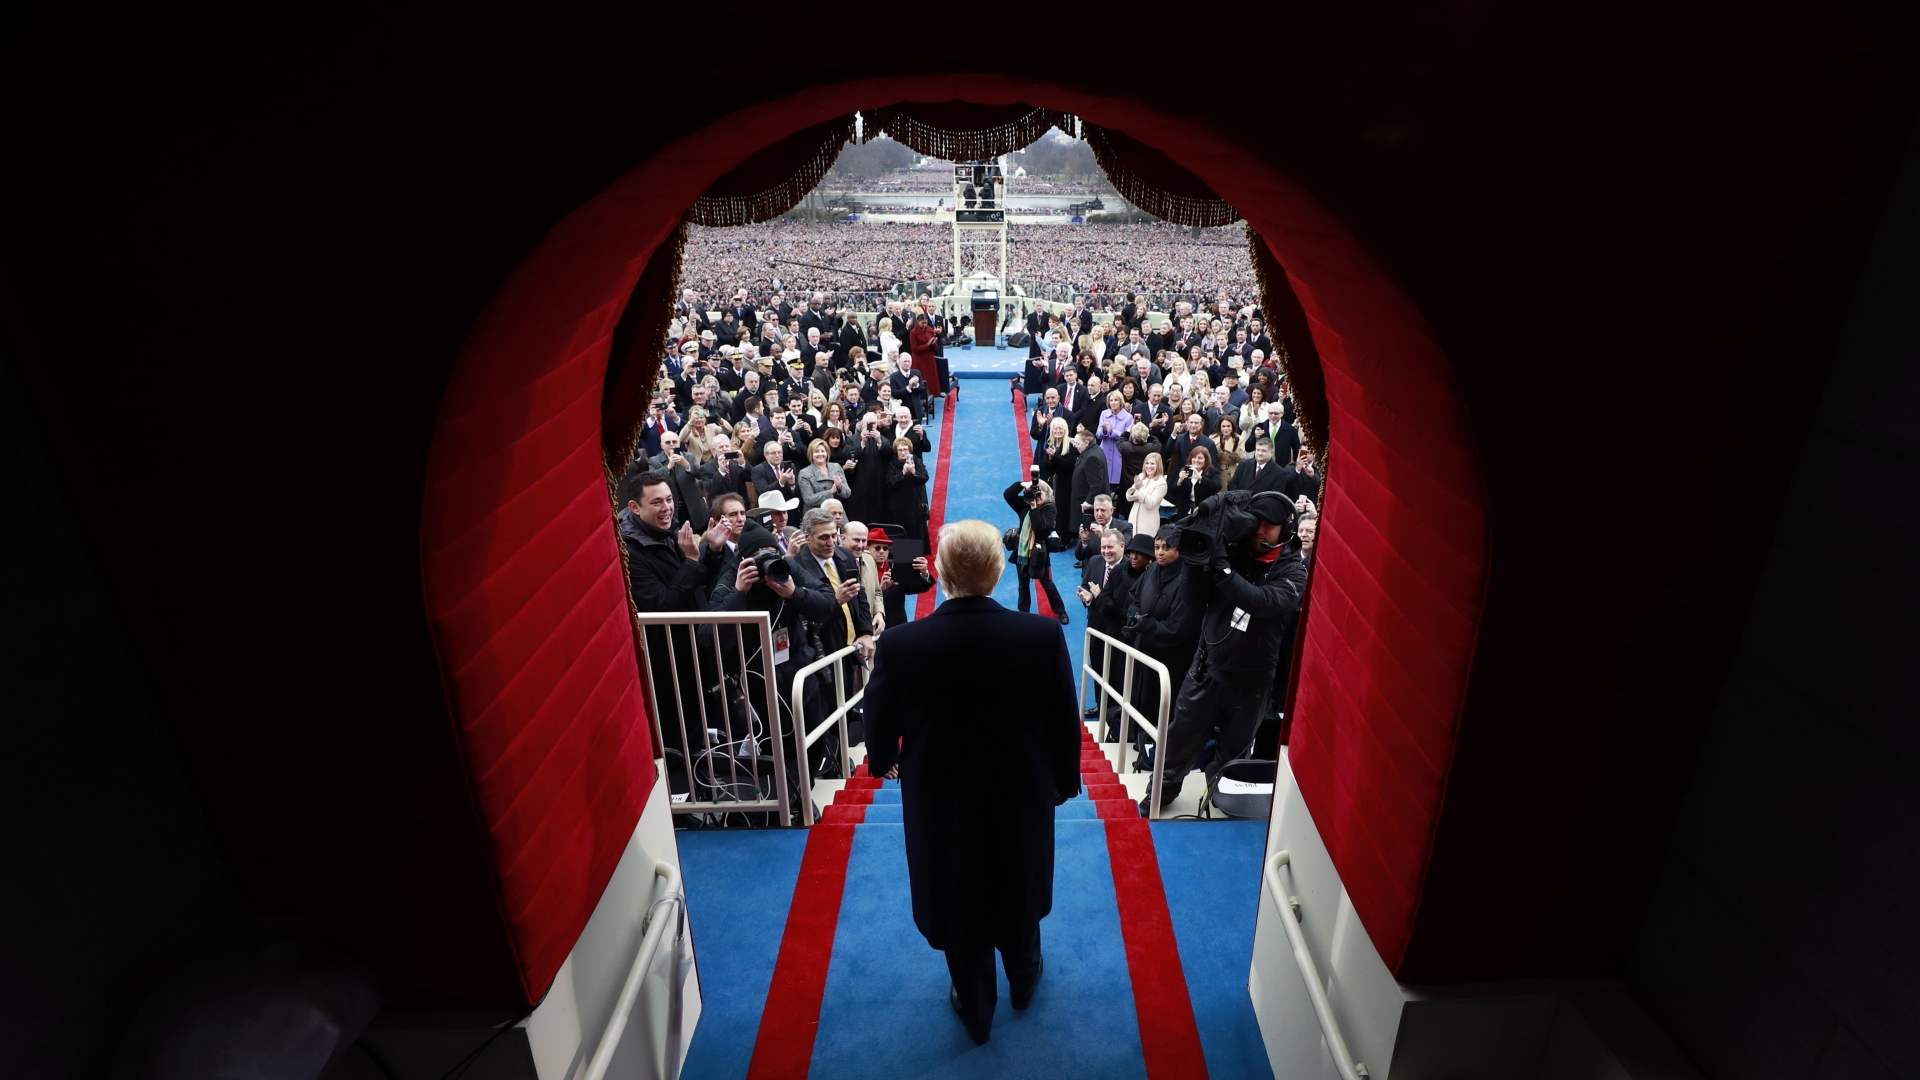 Donald J. Trump arriving at his inauguration at the United States Capitol on January 20, 2017 in Washington, DC. Donald J. Trump became the 45th president of the United States. (Credit: Doug Mills - Pool/Getty Images)